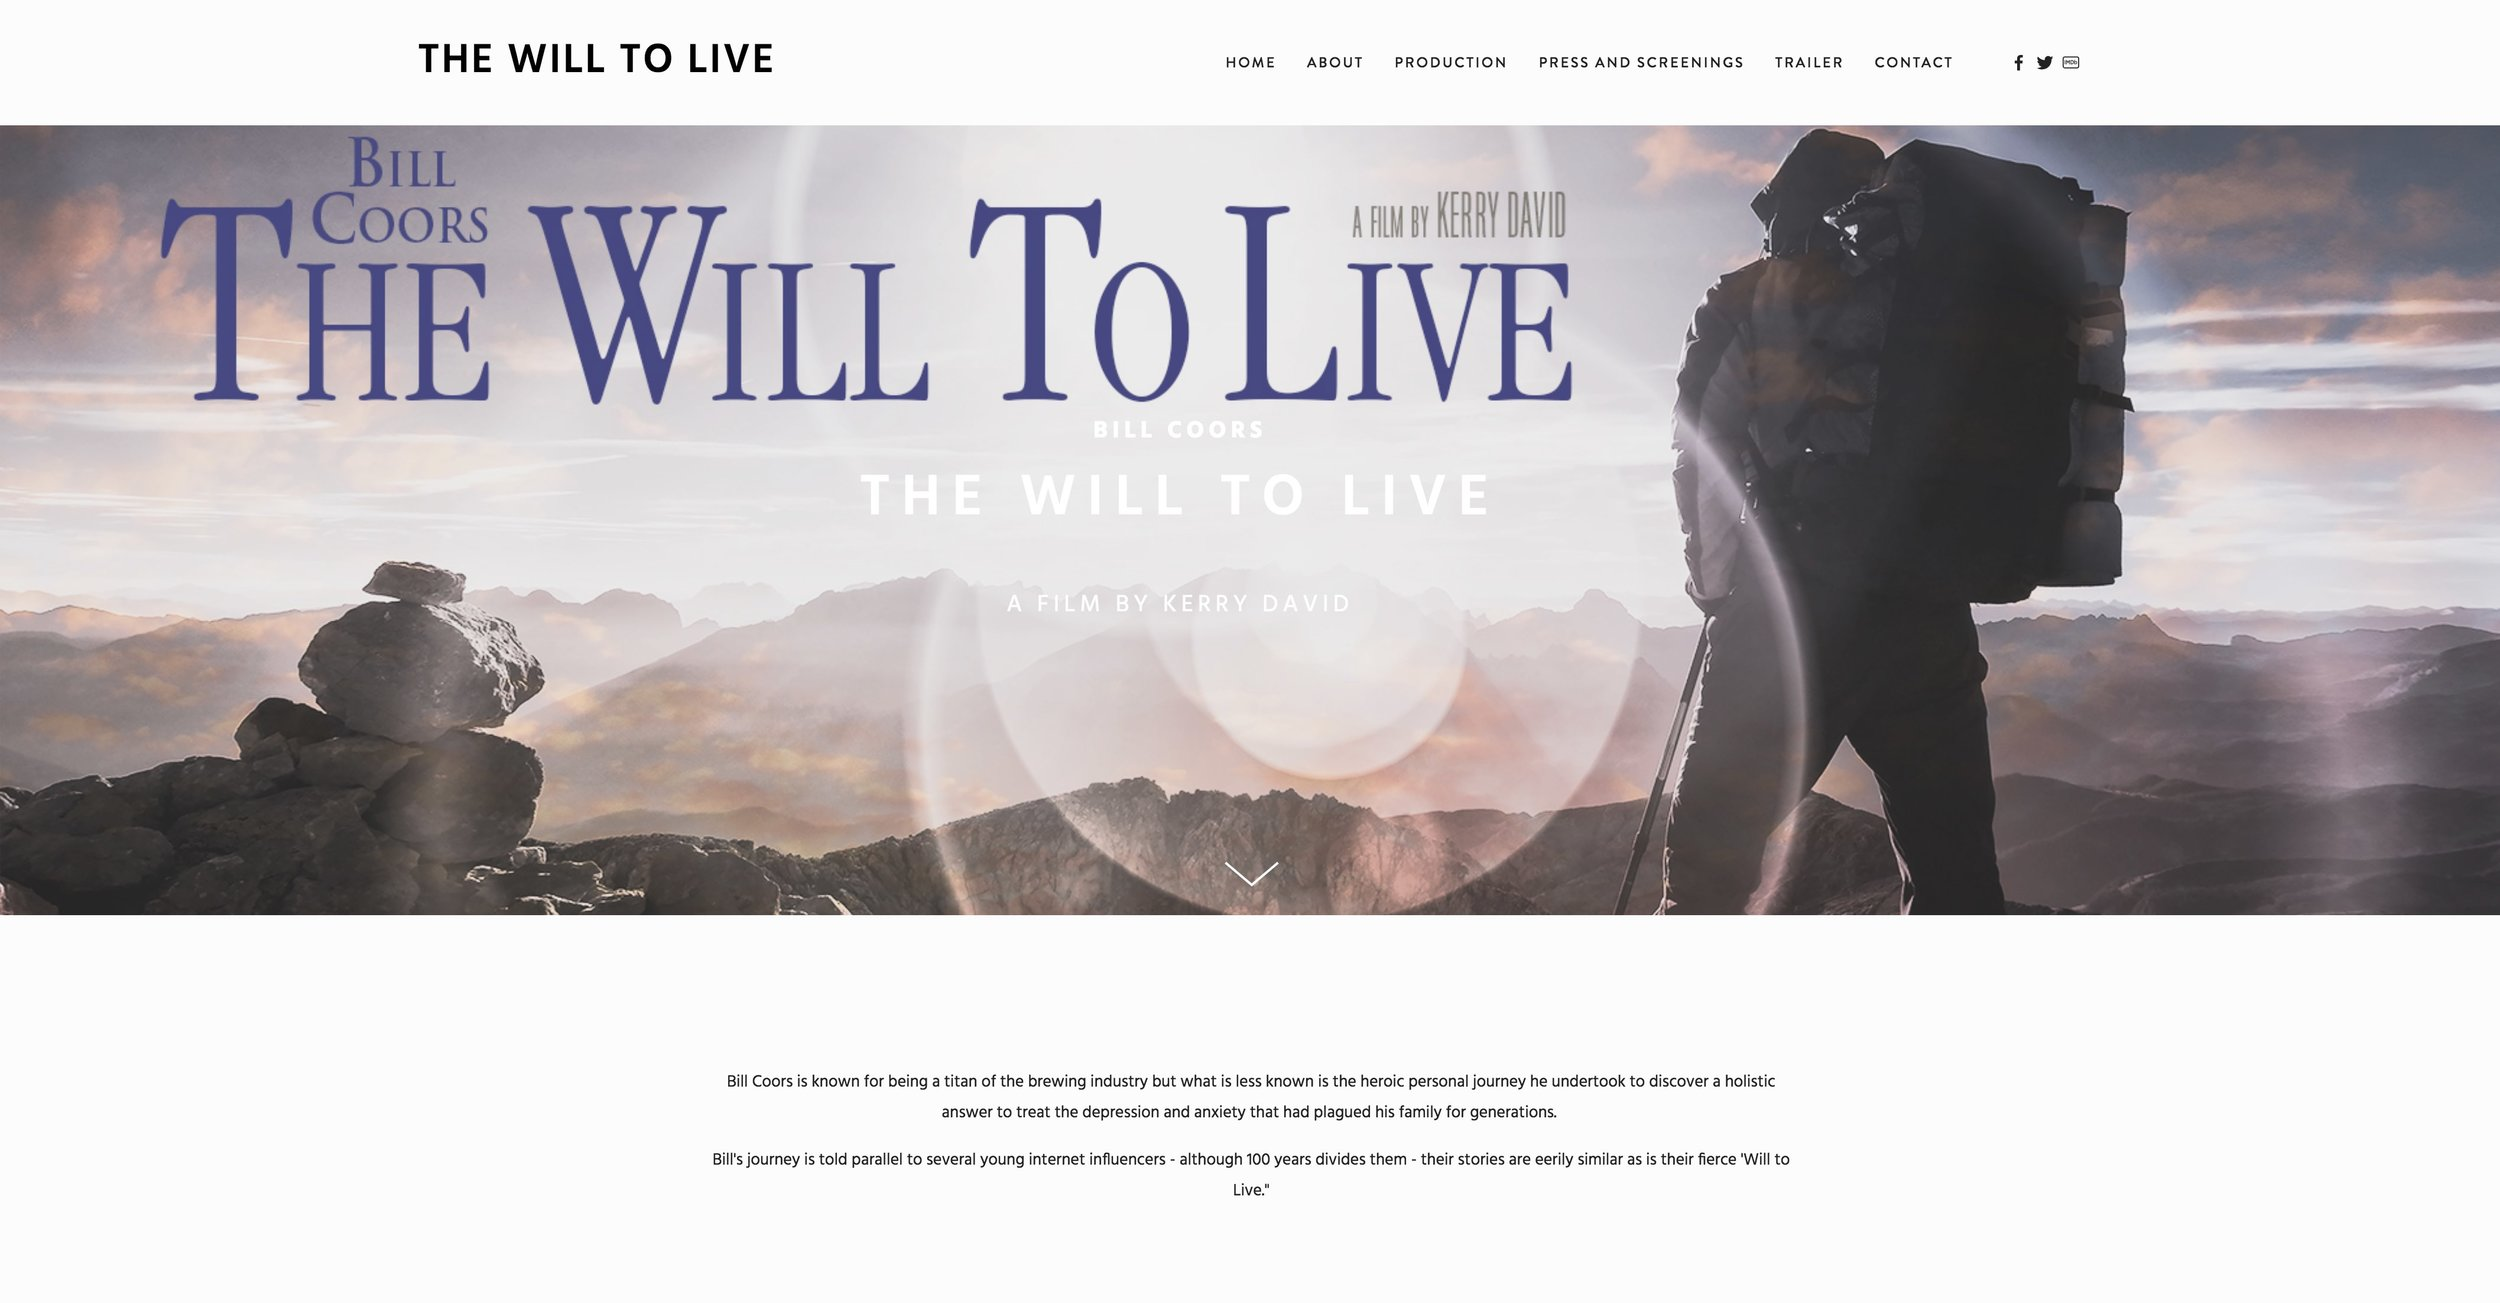 Bill Coors The Will To Live.jpg